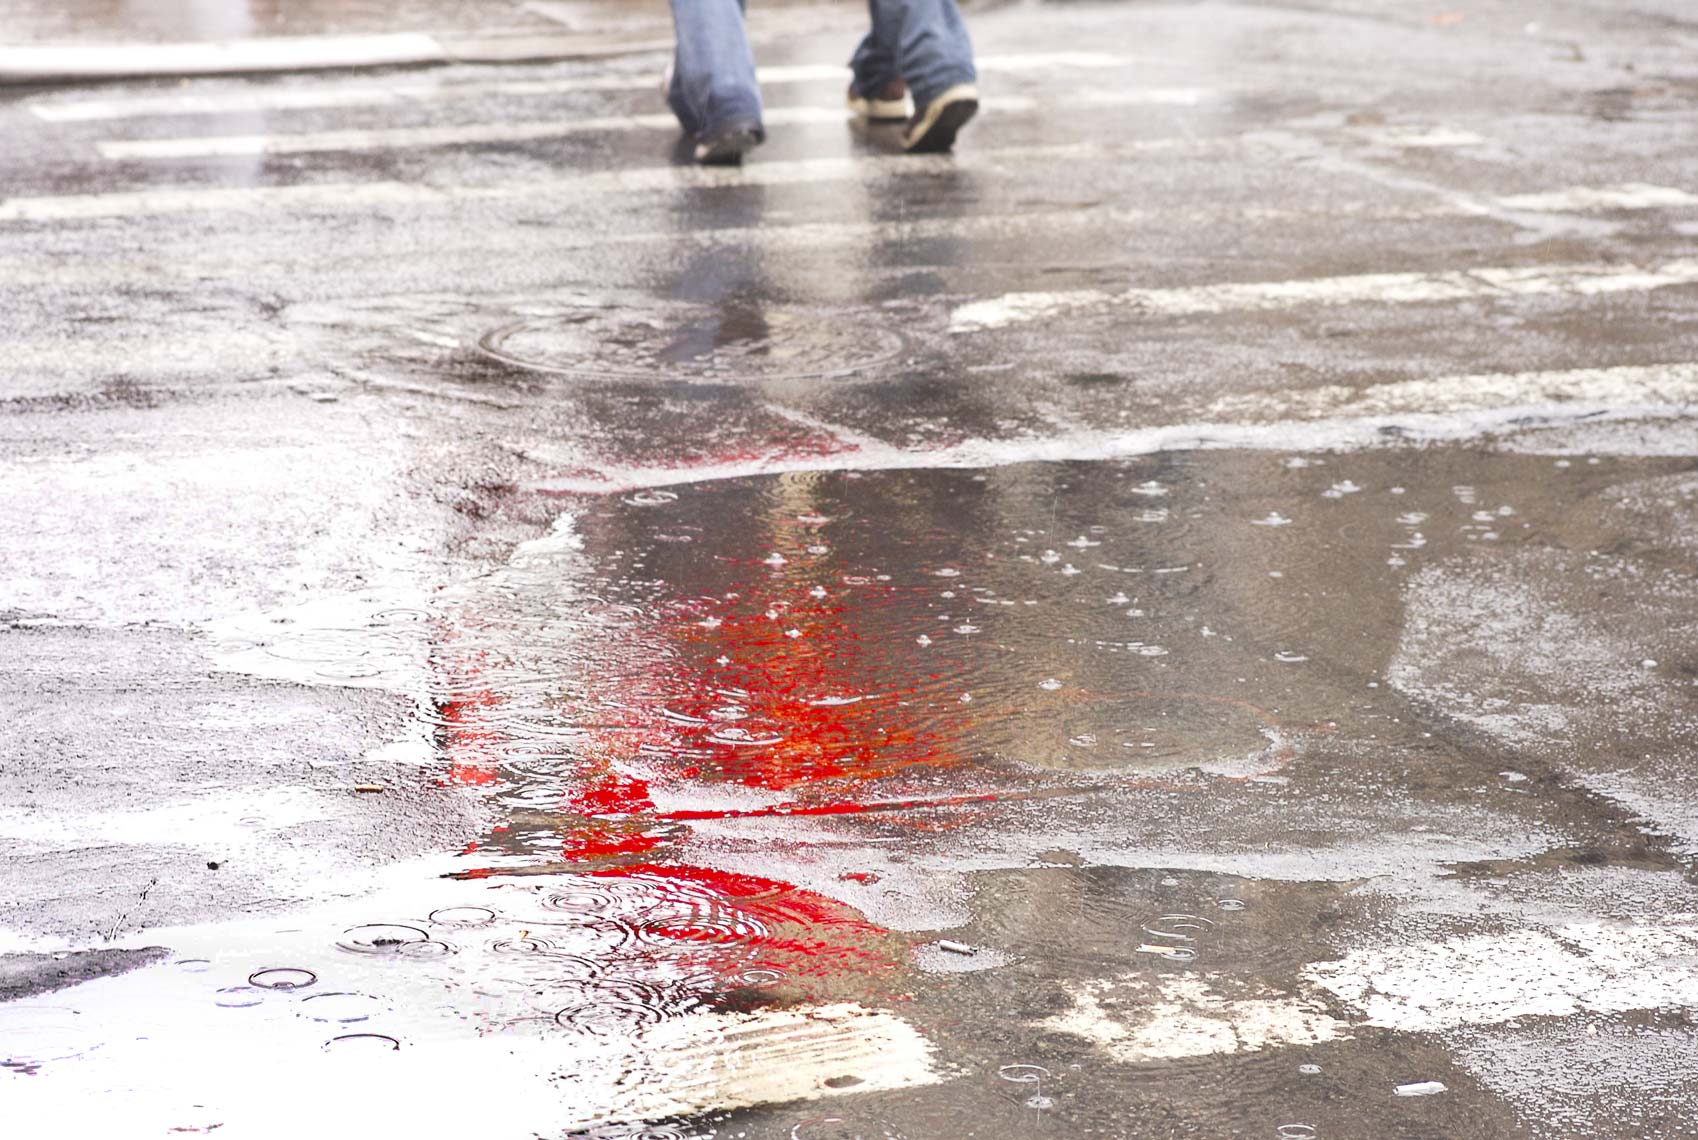 WET PAVEMENT WITH RED